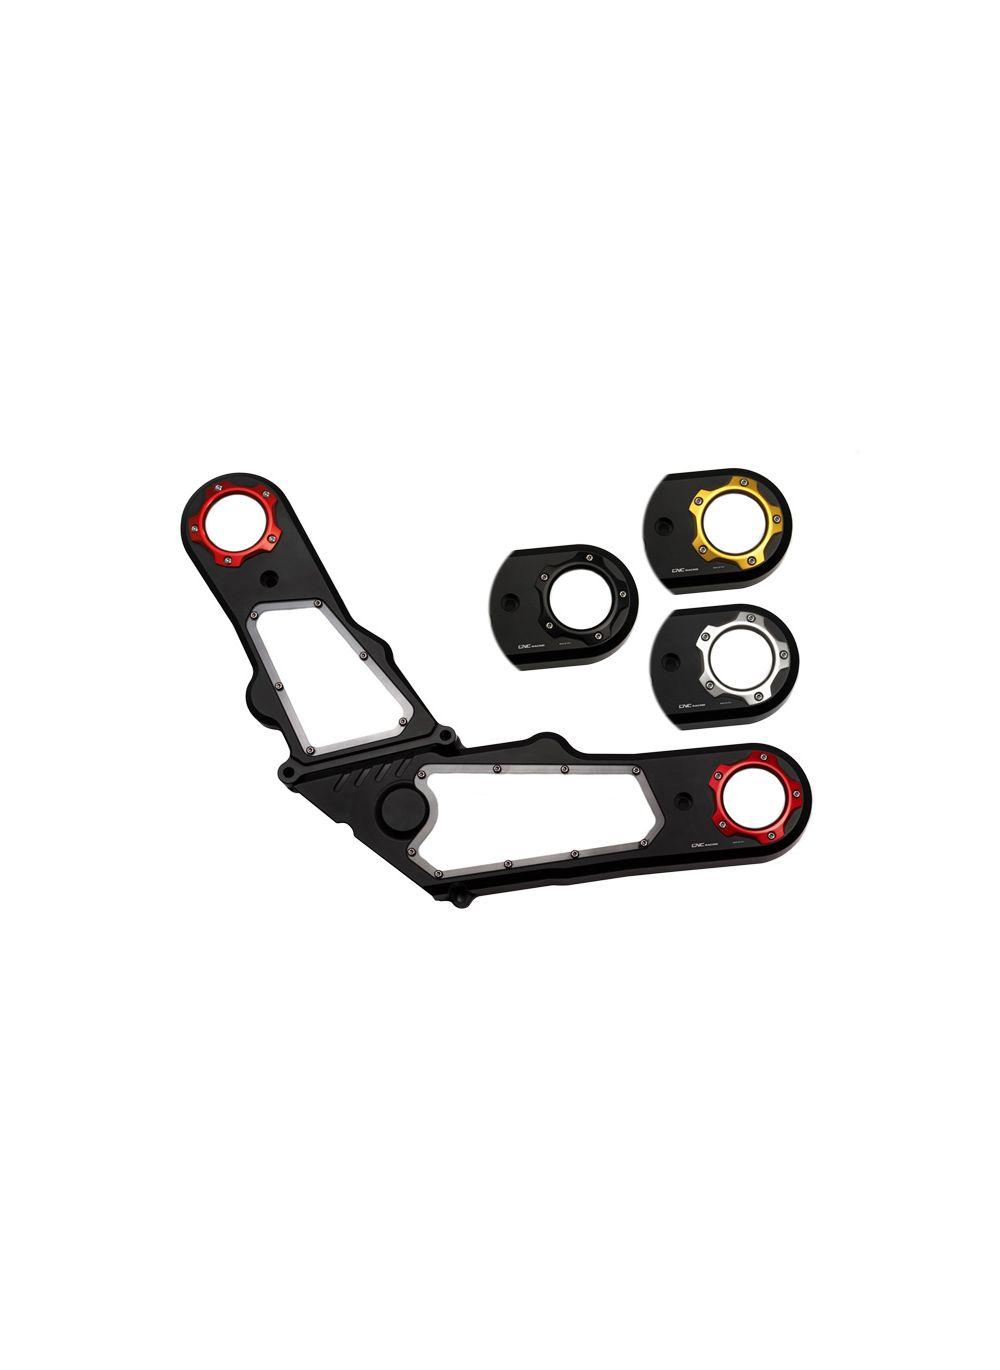 timing belt cover kit  u0026 39 gear u0026 39  scrambler monster hypermotard